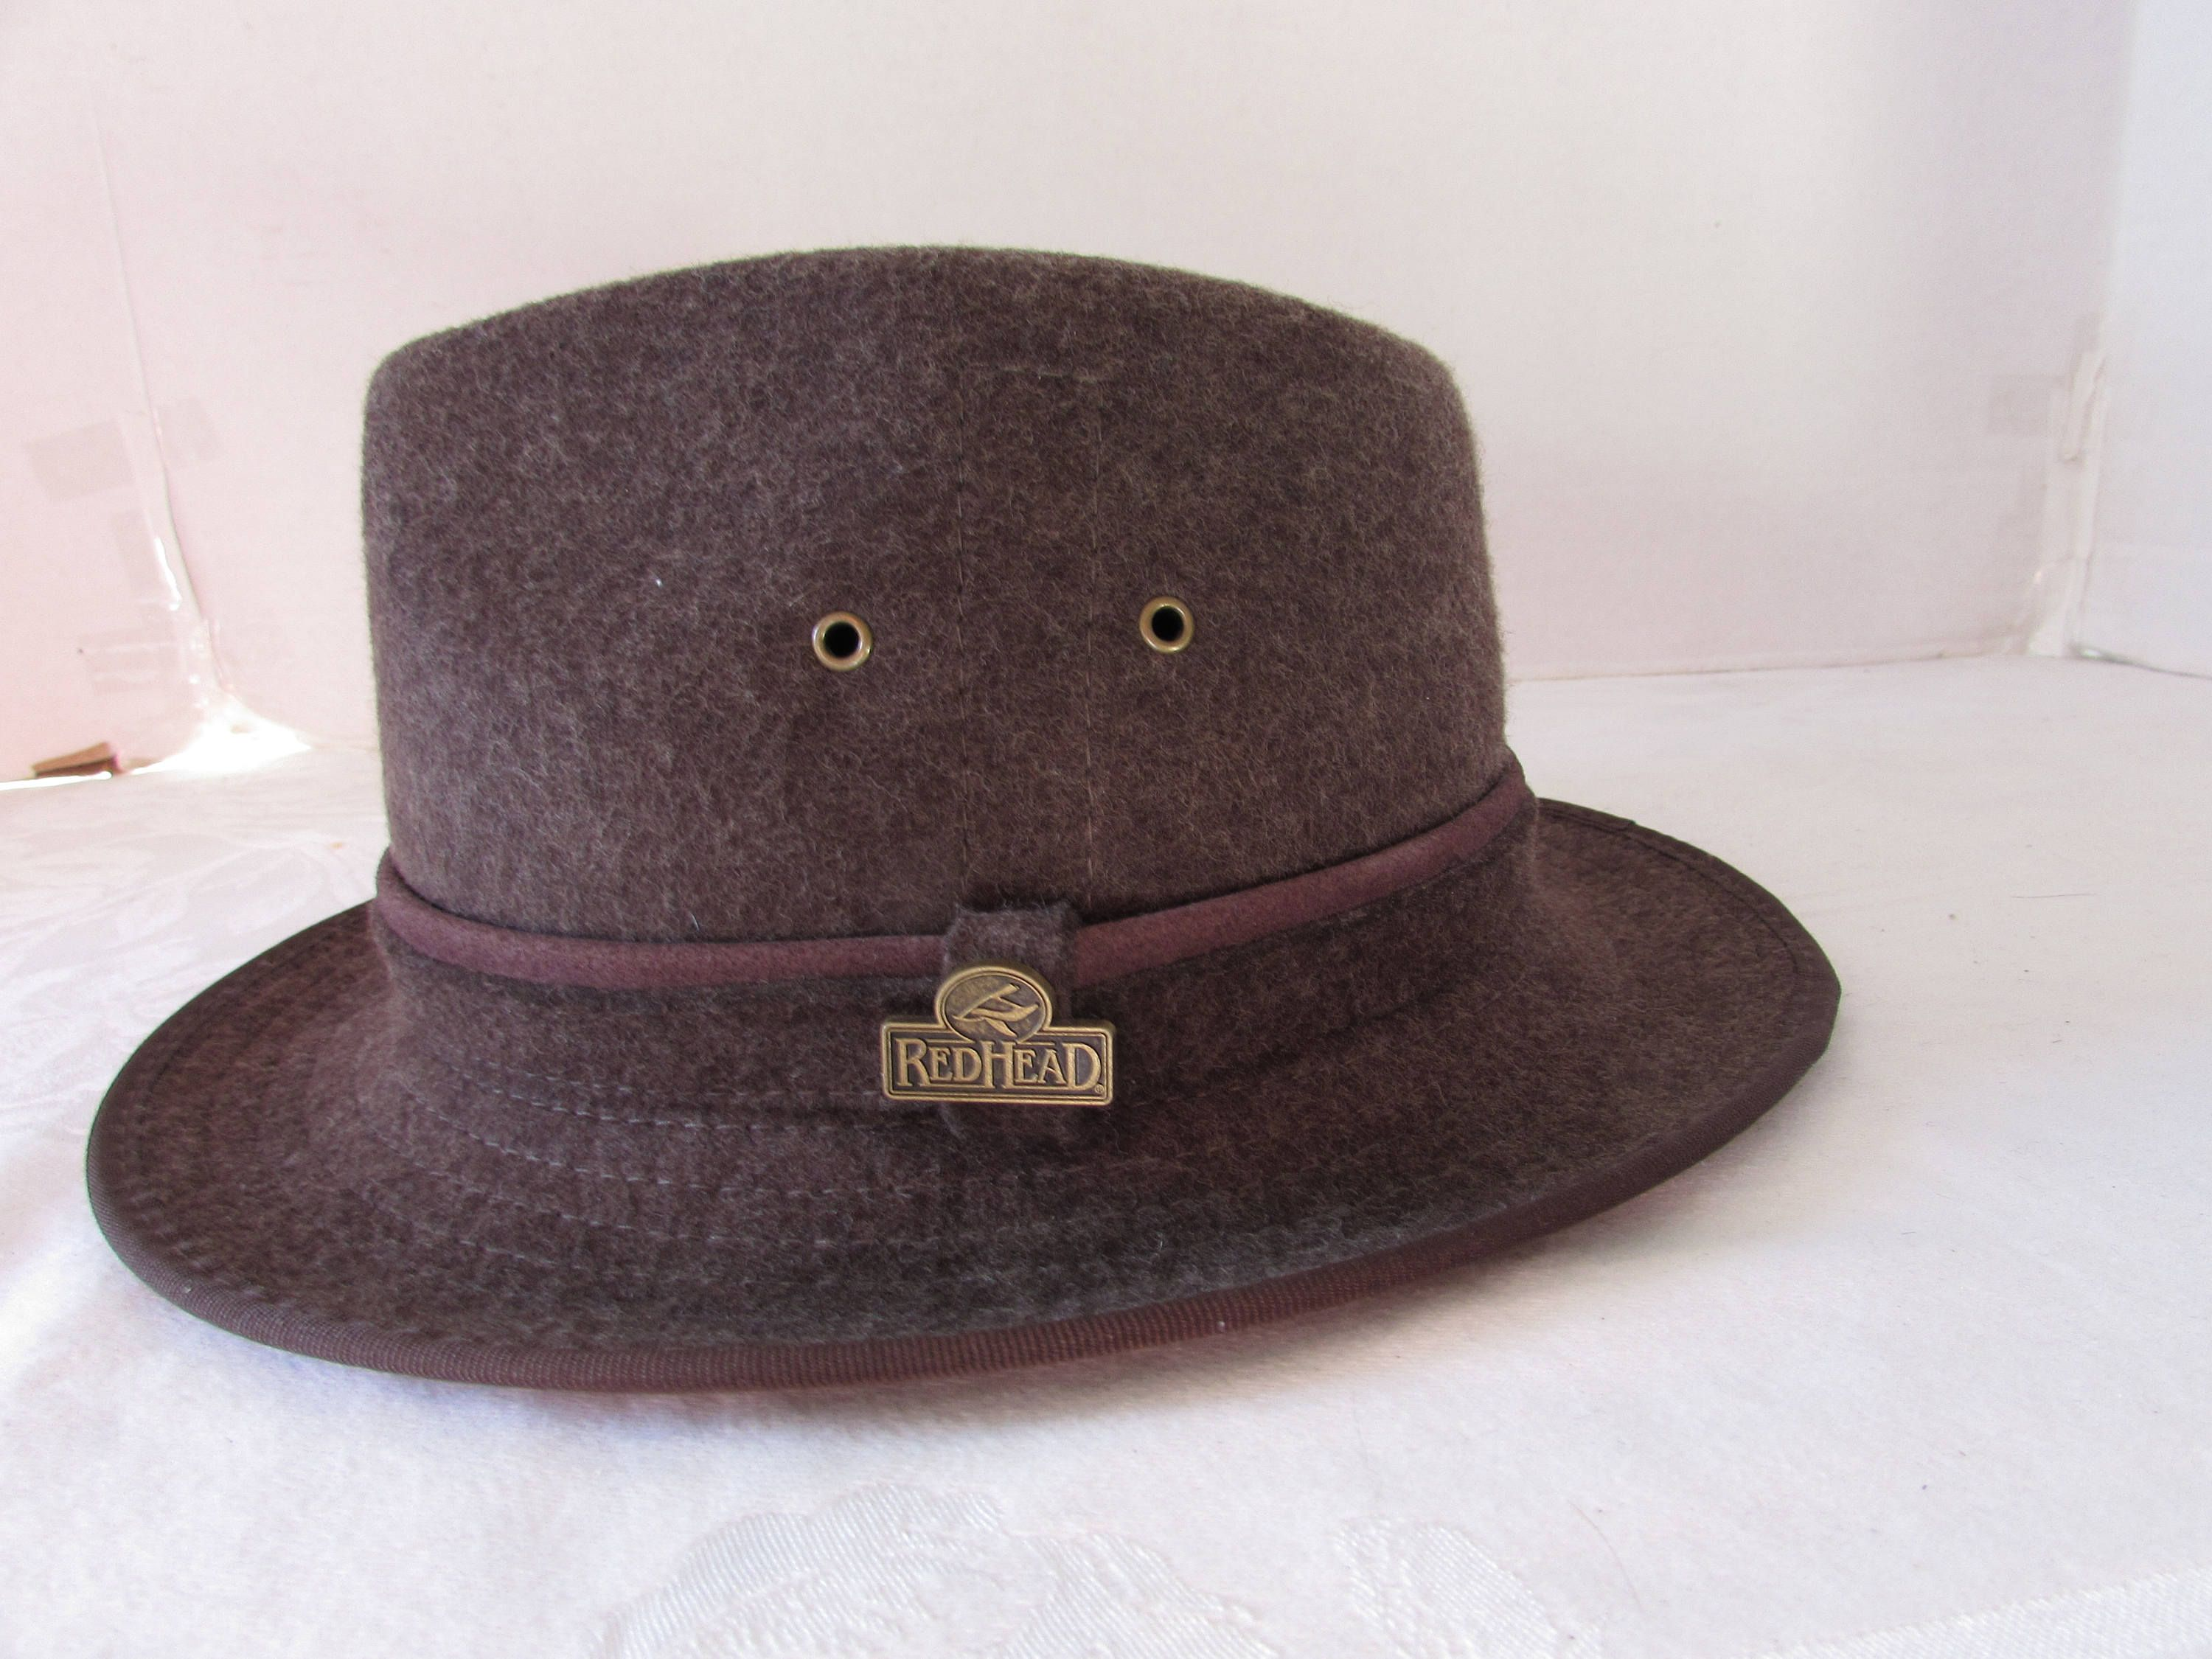 Brown Wool Hat   Fedora unisex REDHEAD Brand size small by  WHOLESALEtoEVERYONE on Etsy 55e5145942a